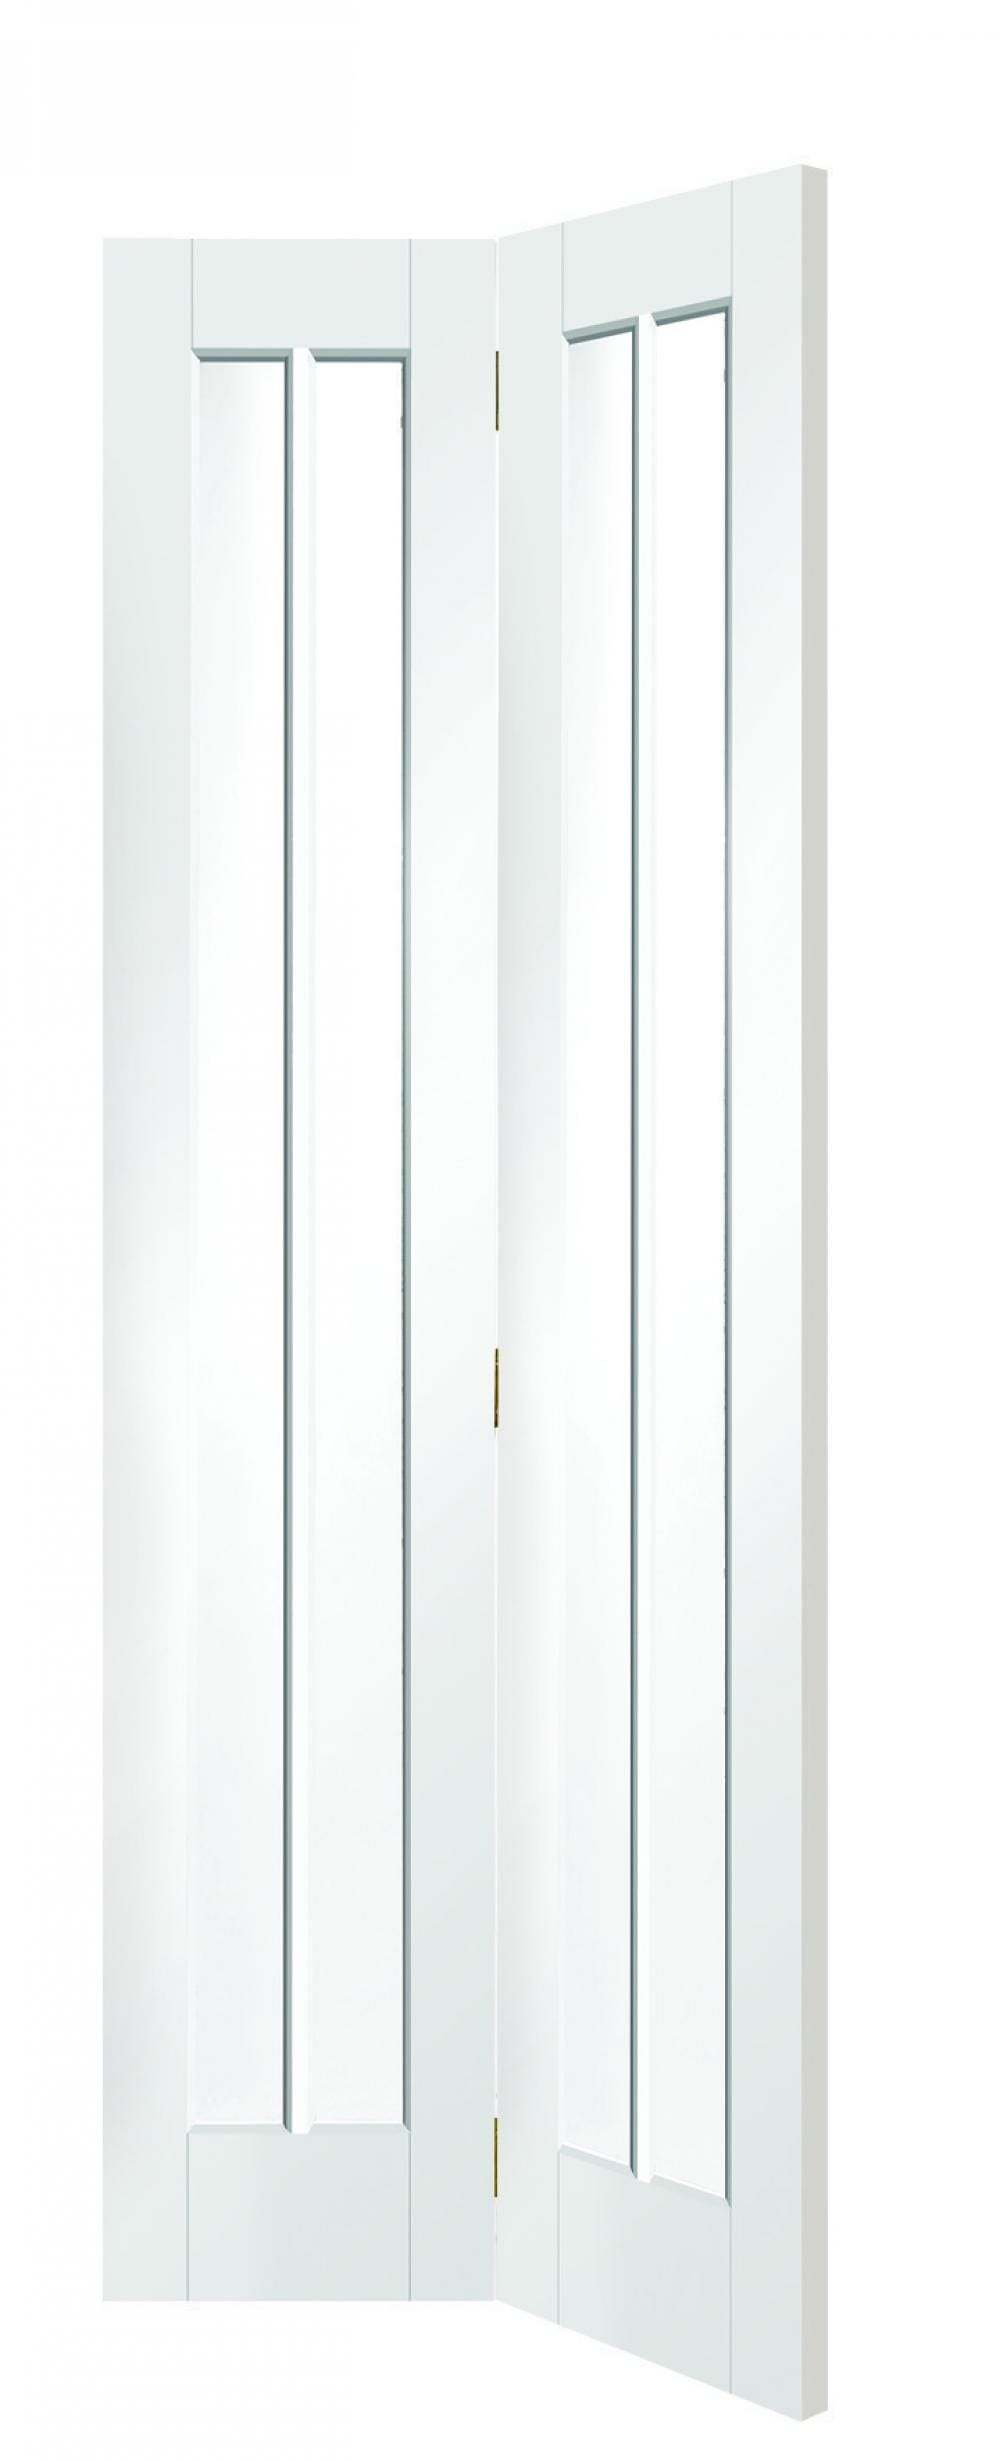 Worcester White Bi-fold - Clear Glass Image